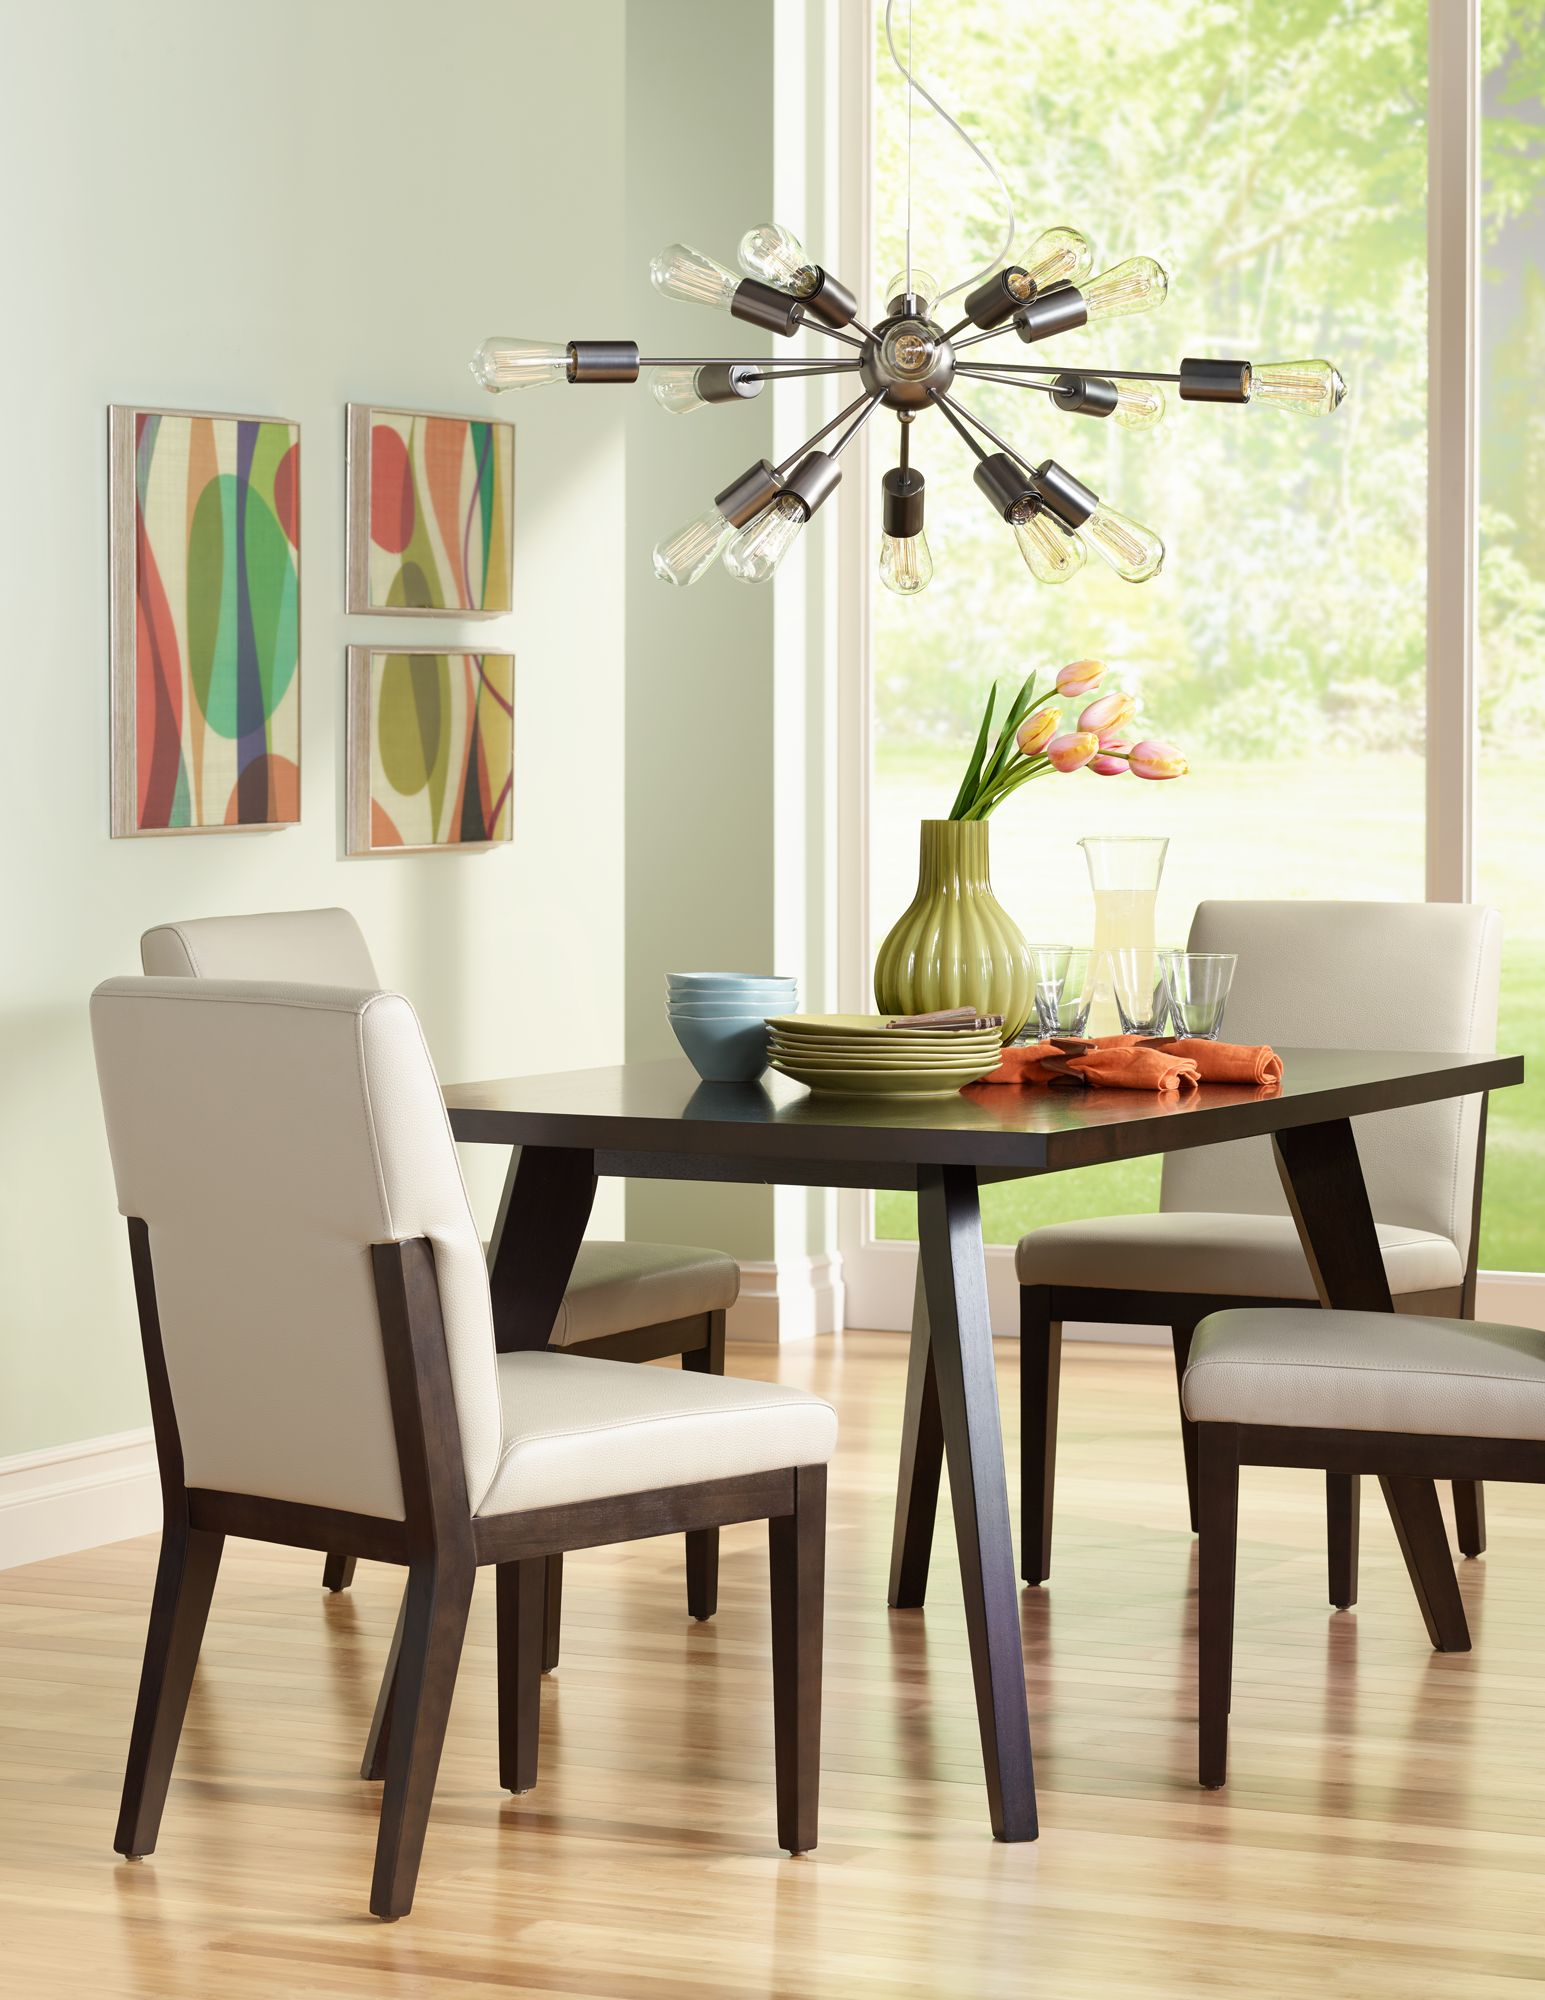 This Sleek Dining Room Features A Sputnik Style Chandelier Overhead.